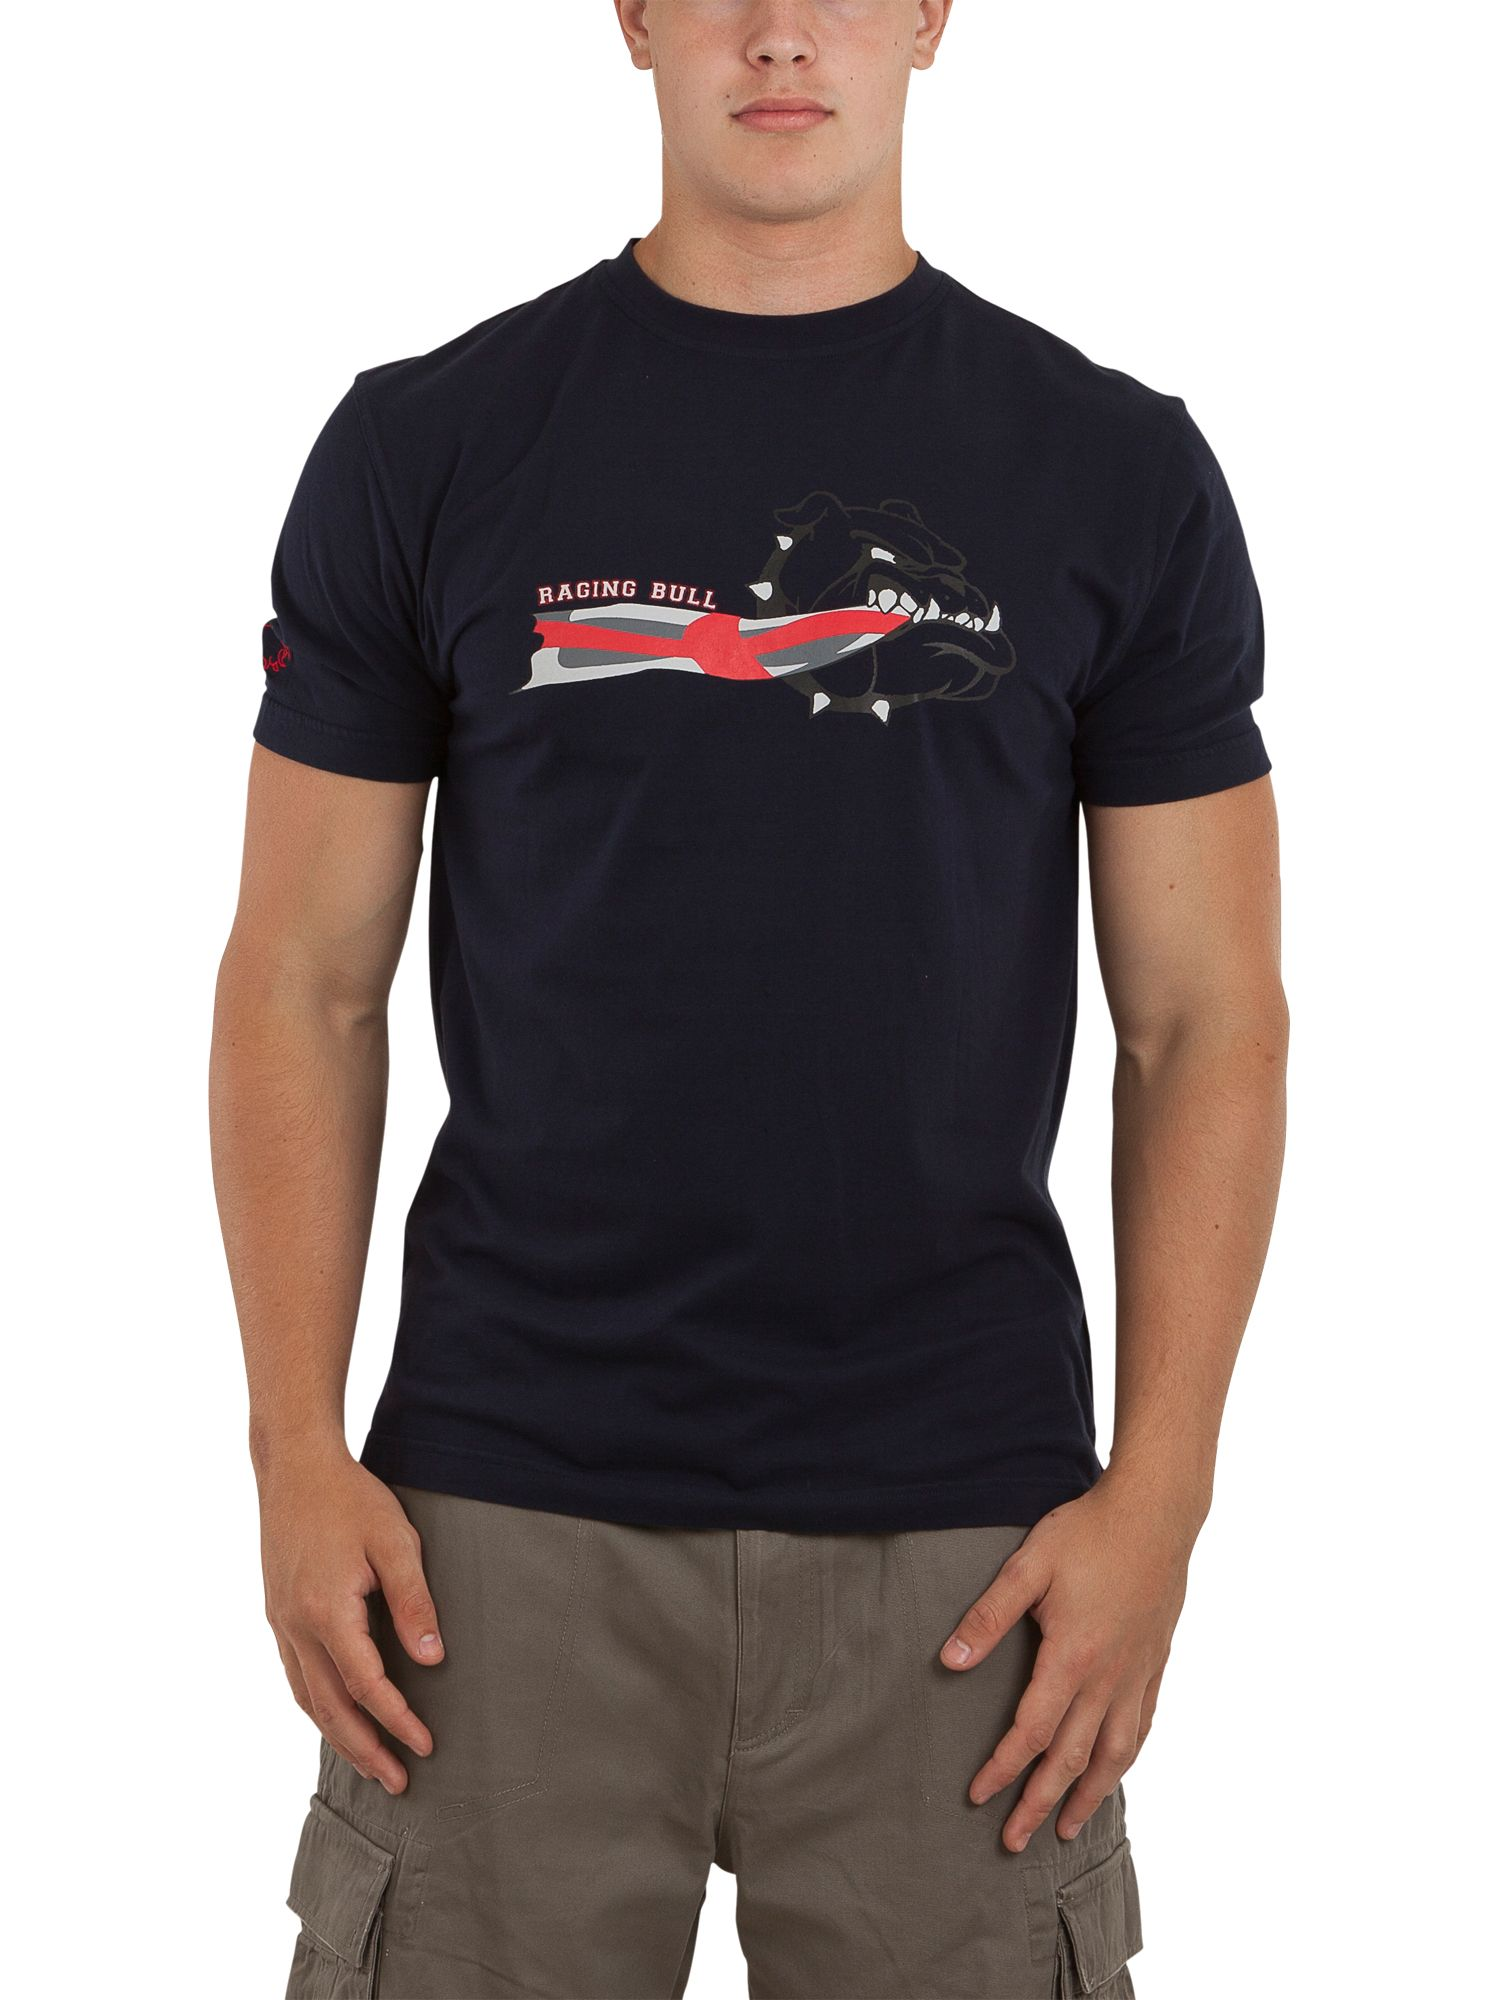 Raging Bull Bull dog T-shirt, Navy 154236395 product image